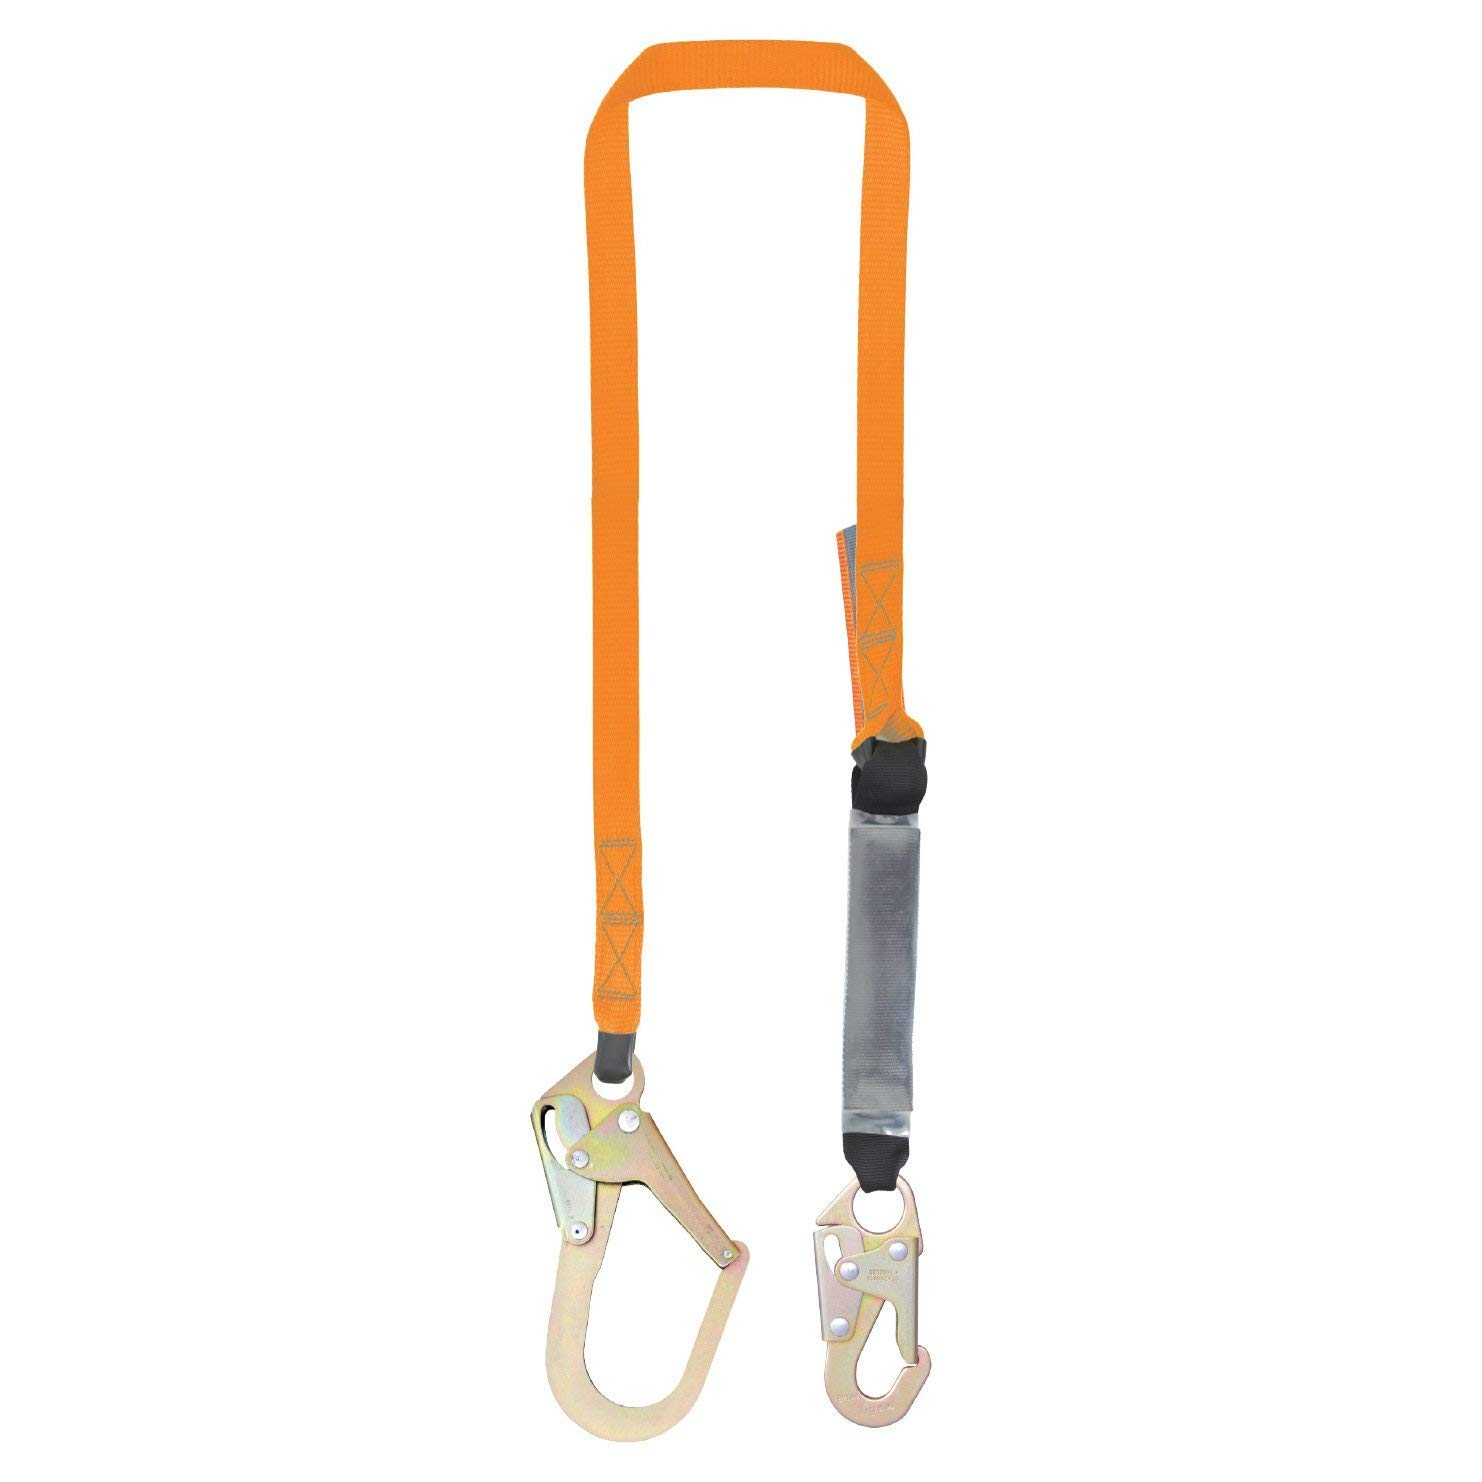 C5011-6' Single Leg External Shock Absorbing Lanyard with 1 Rebar Hook and 1 Steel Snap Hook, OSHA/ANSI Compliant by Malta Dynamics